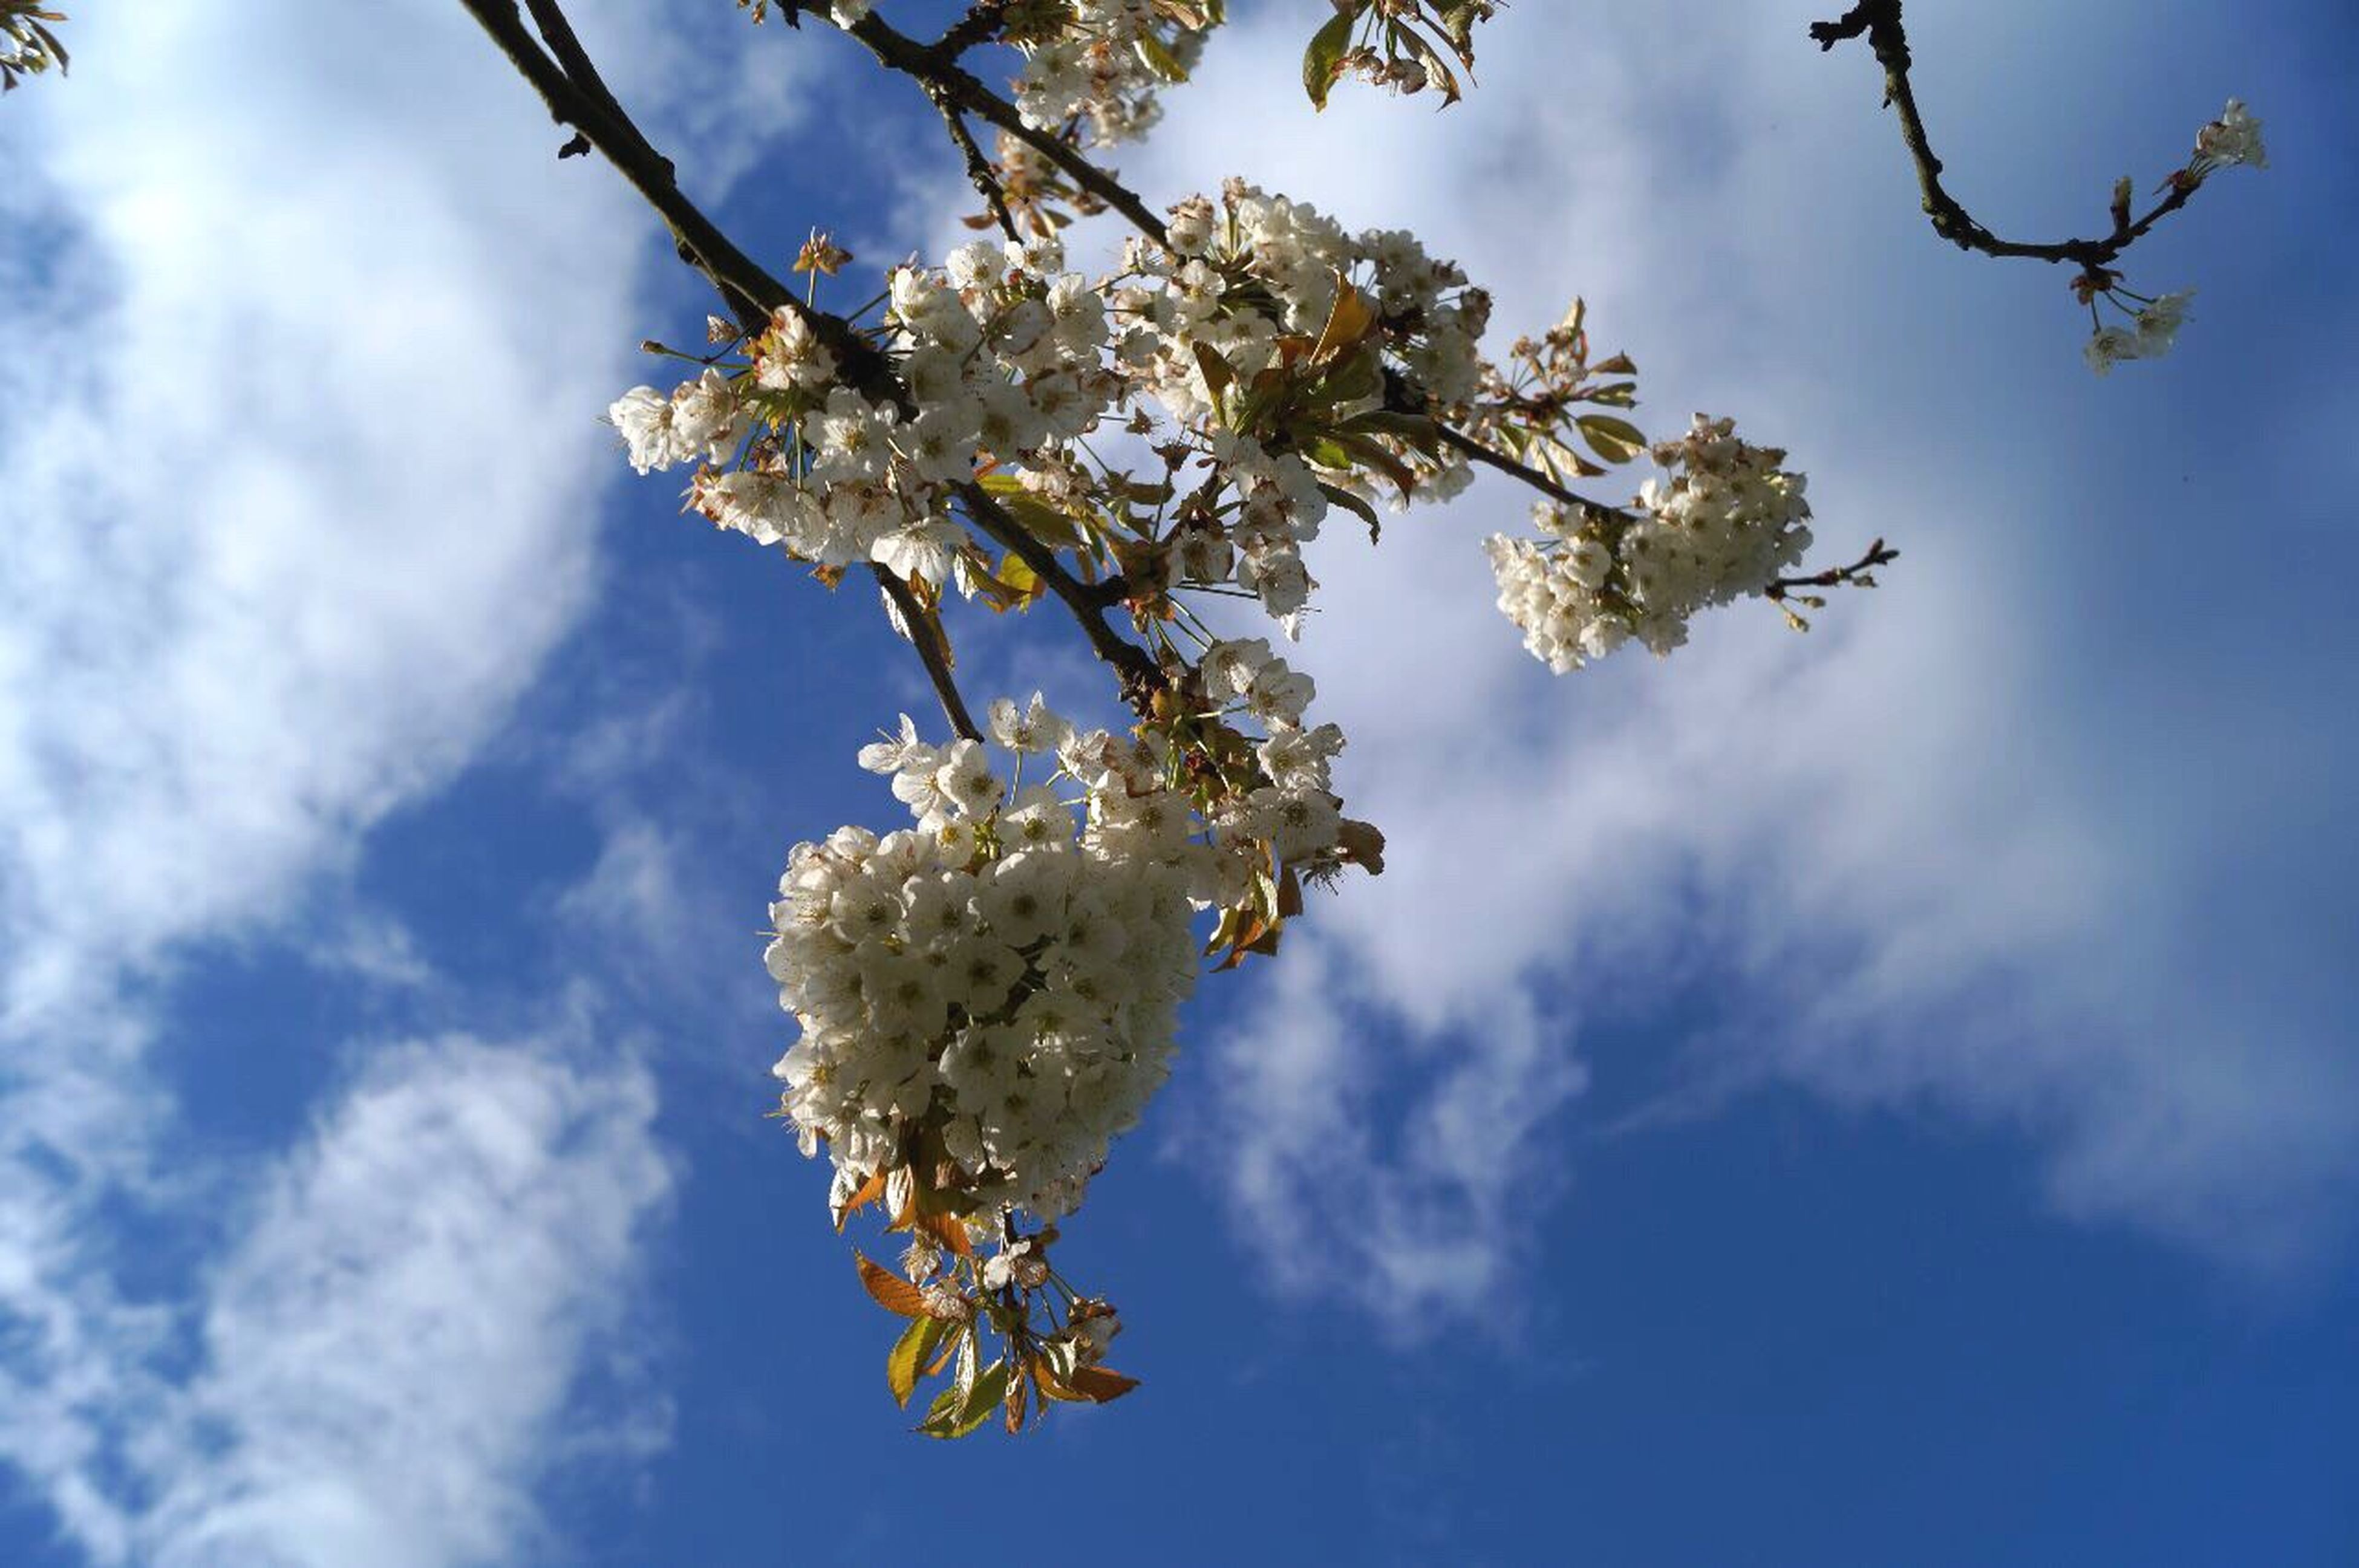 flower, beauty in nature, tree, nature, growth, fragility, springtime, branch, low angle view, apple tree, white color, blossom, sky, apple blossom, twig, day, freshness, outdoors, no people, cloud - sky, blue, close-up, flower head